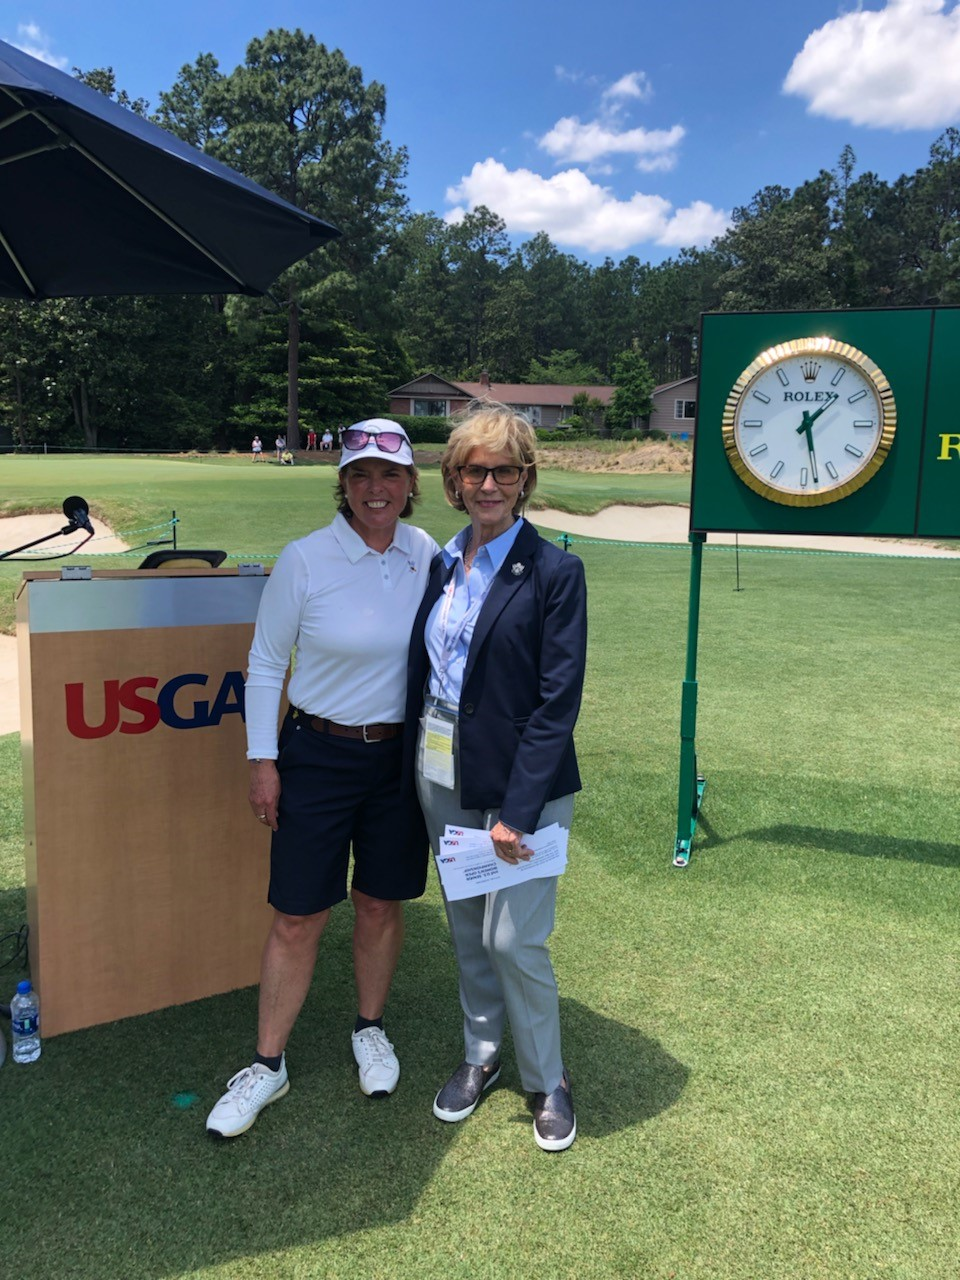 Hole #1 - Judy Rankin, Announcer